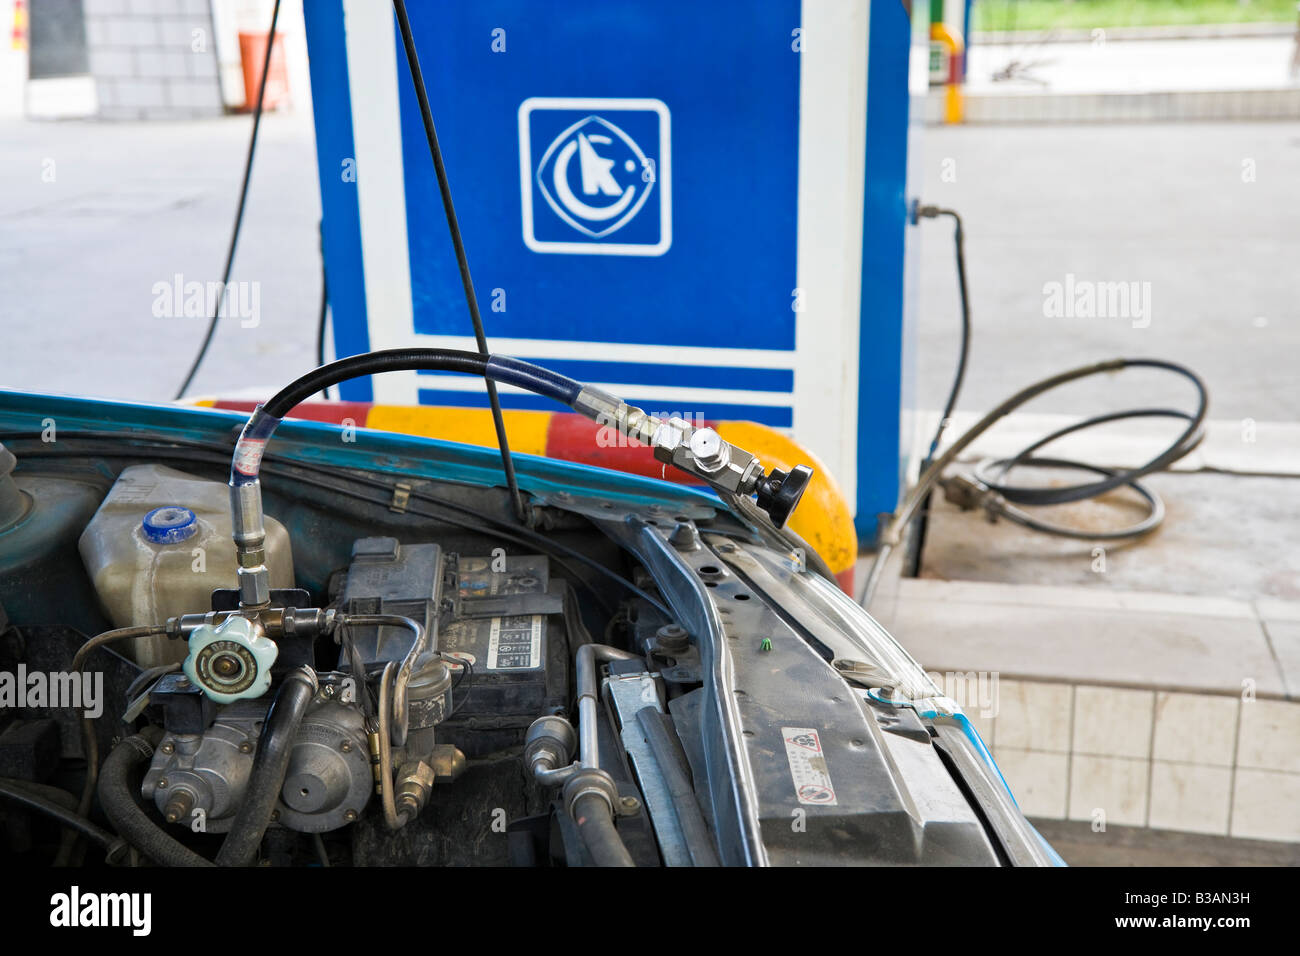 Car refueling with LPG Liquified Petroleum Gas in China JMH3259 - Stock Image